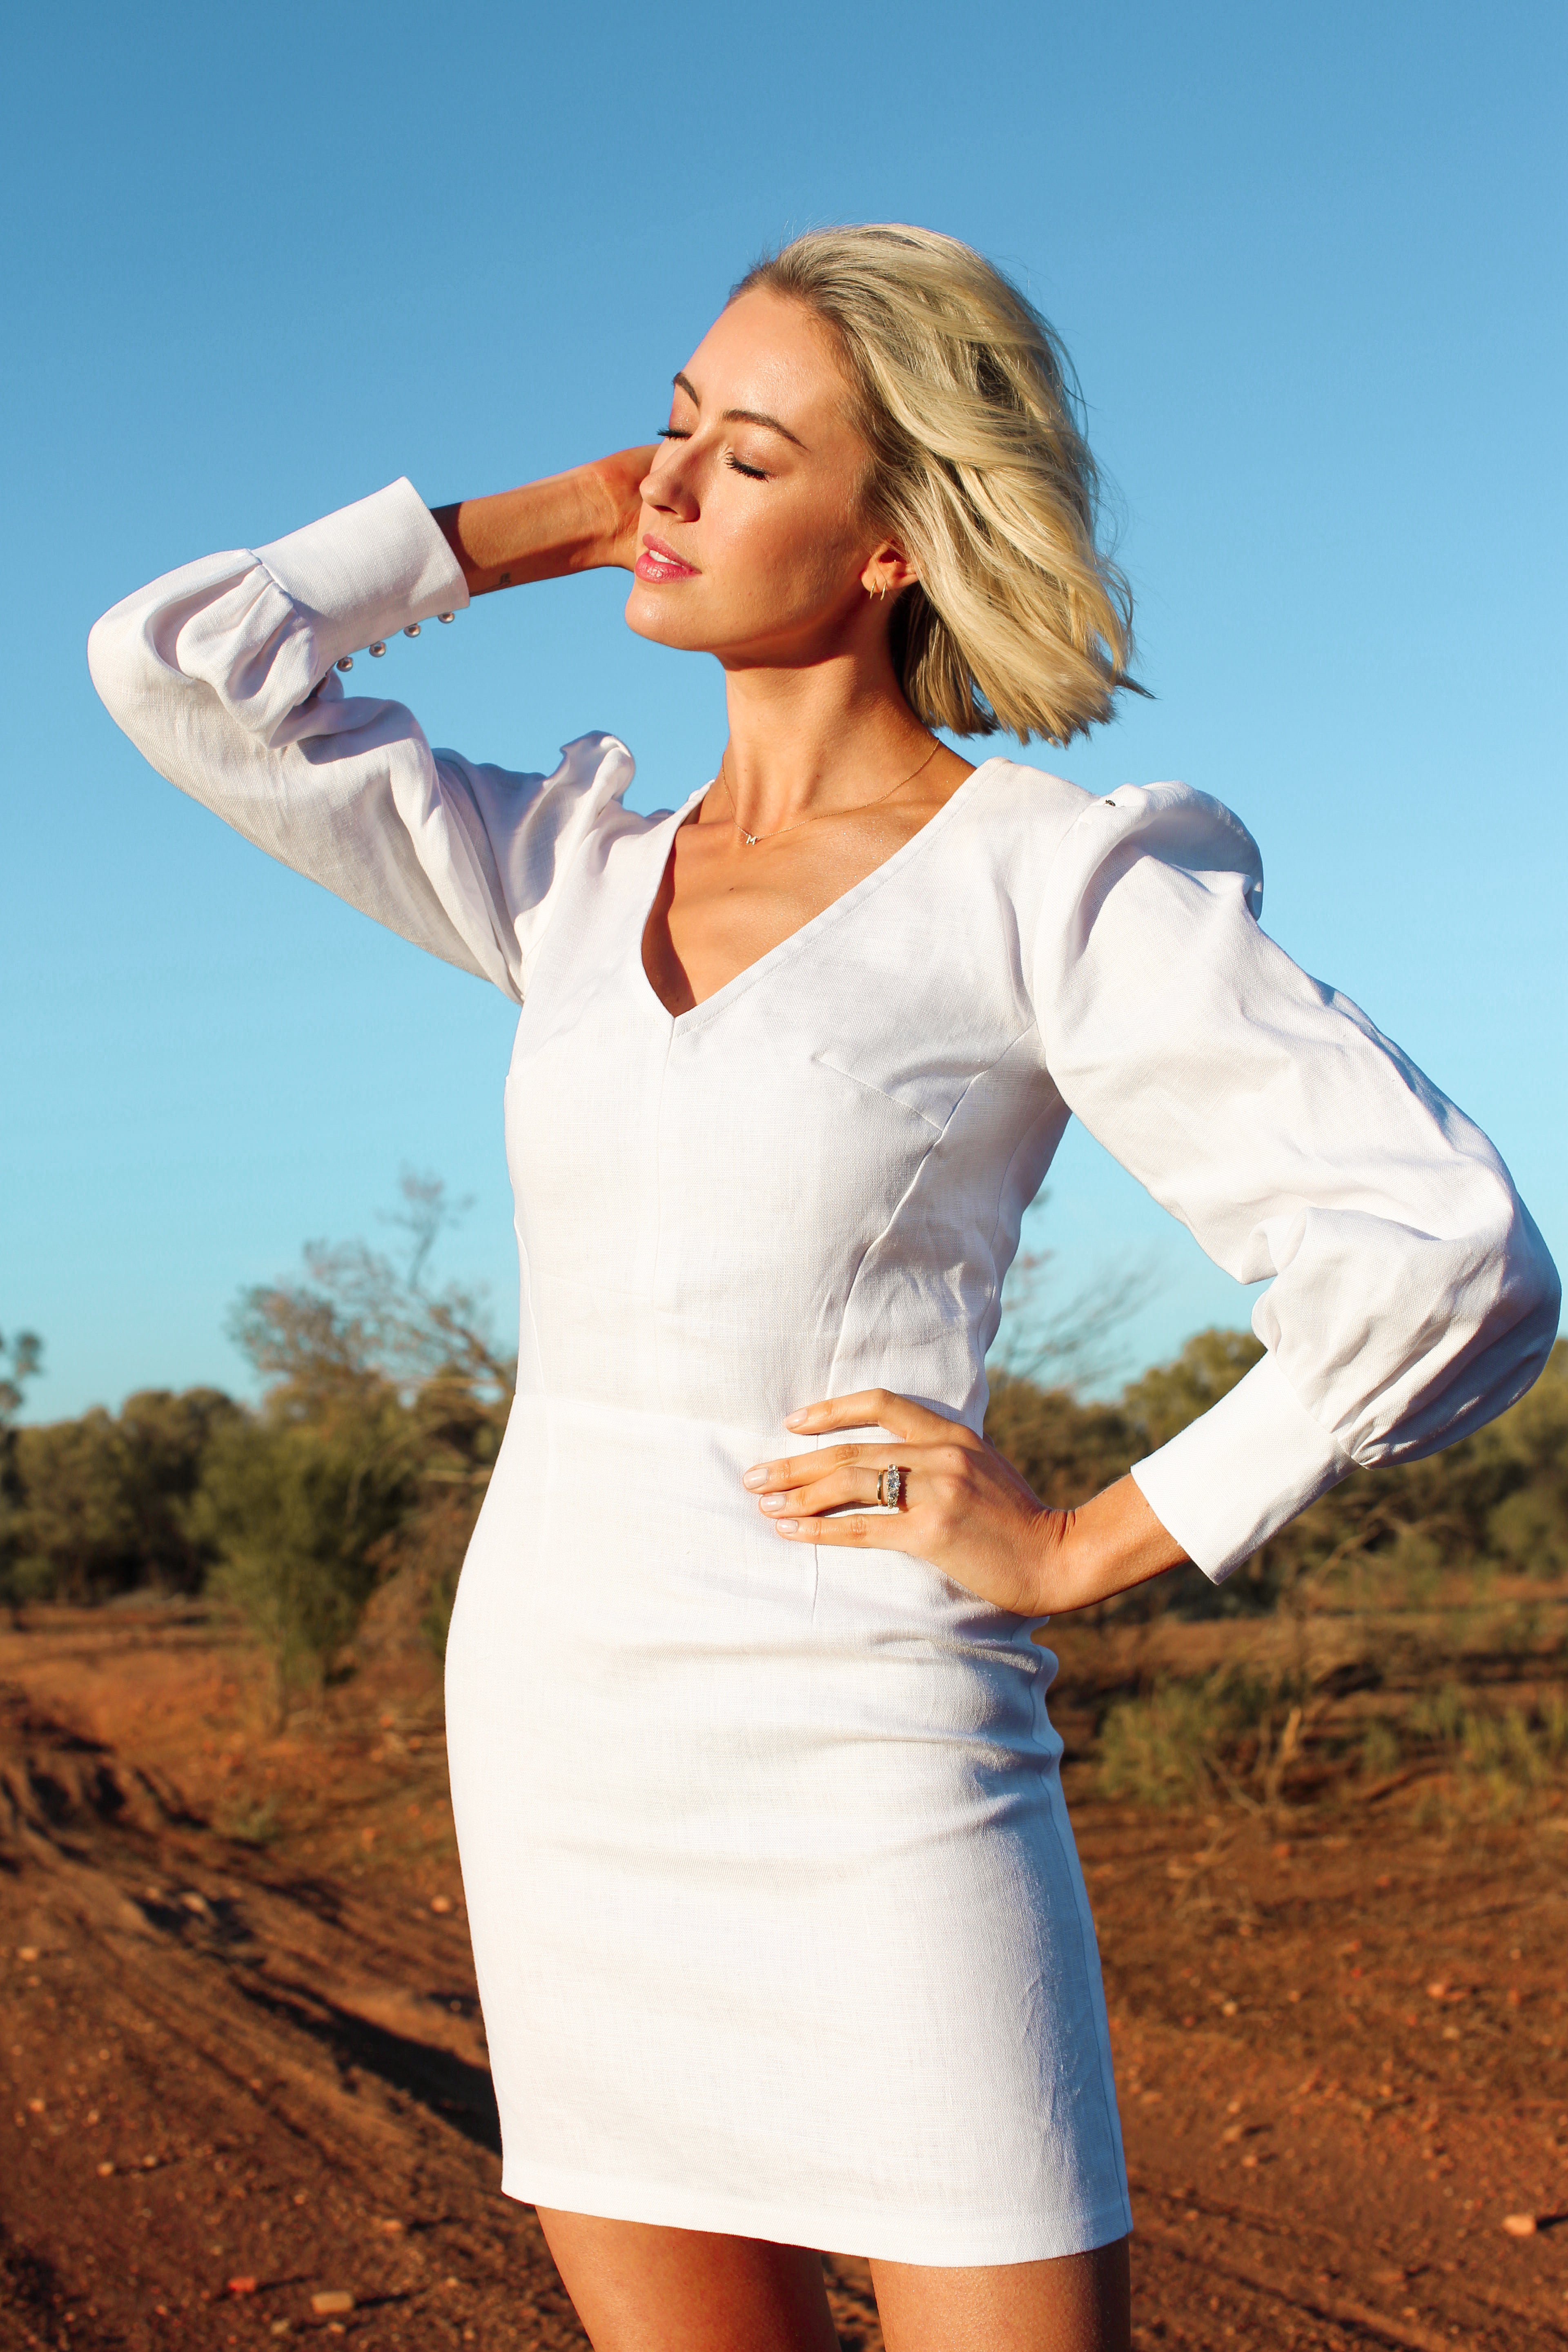 Marlo by Marlo Release 1 Campaign Imagery